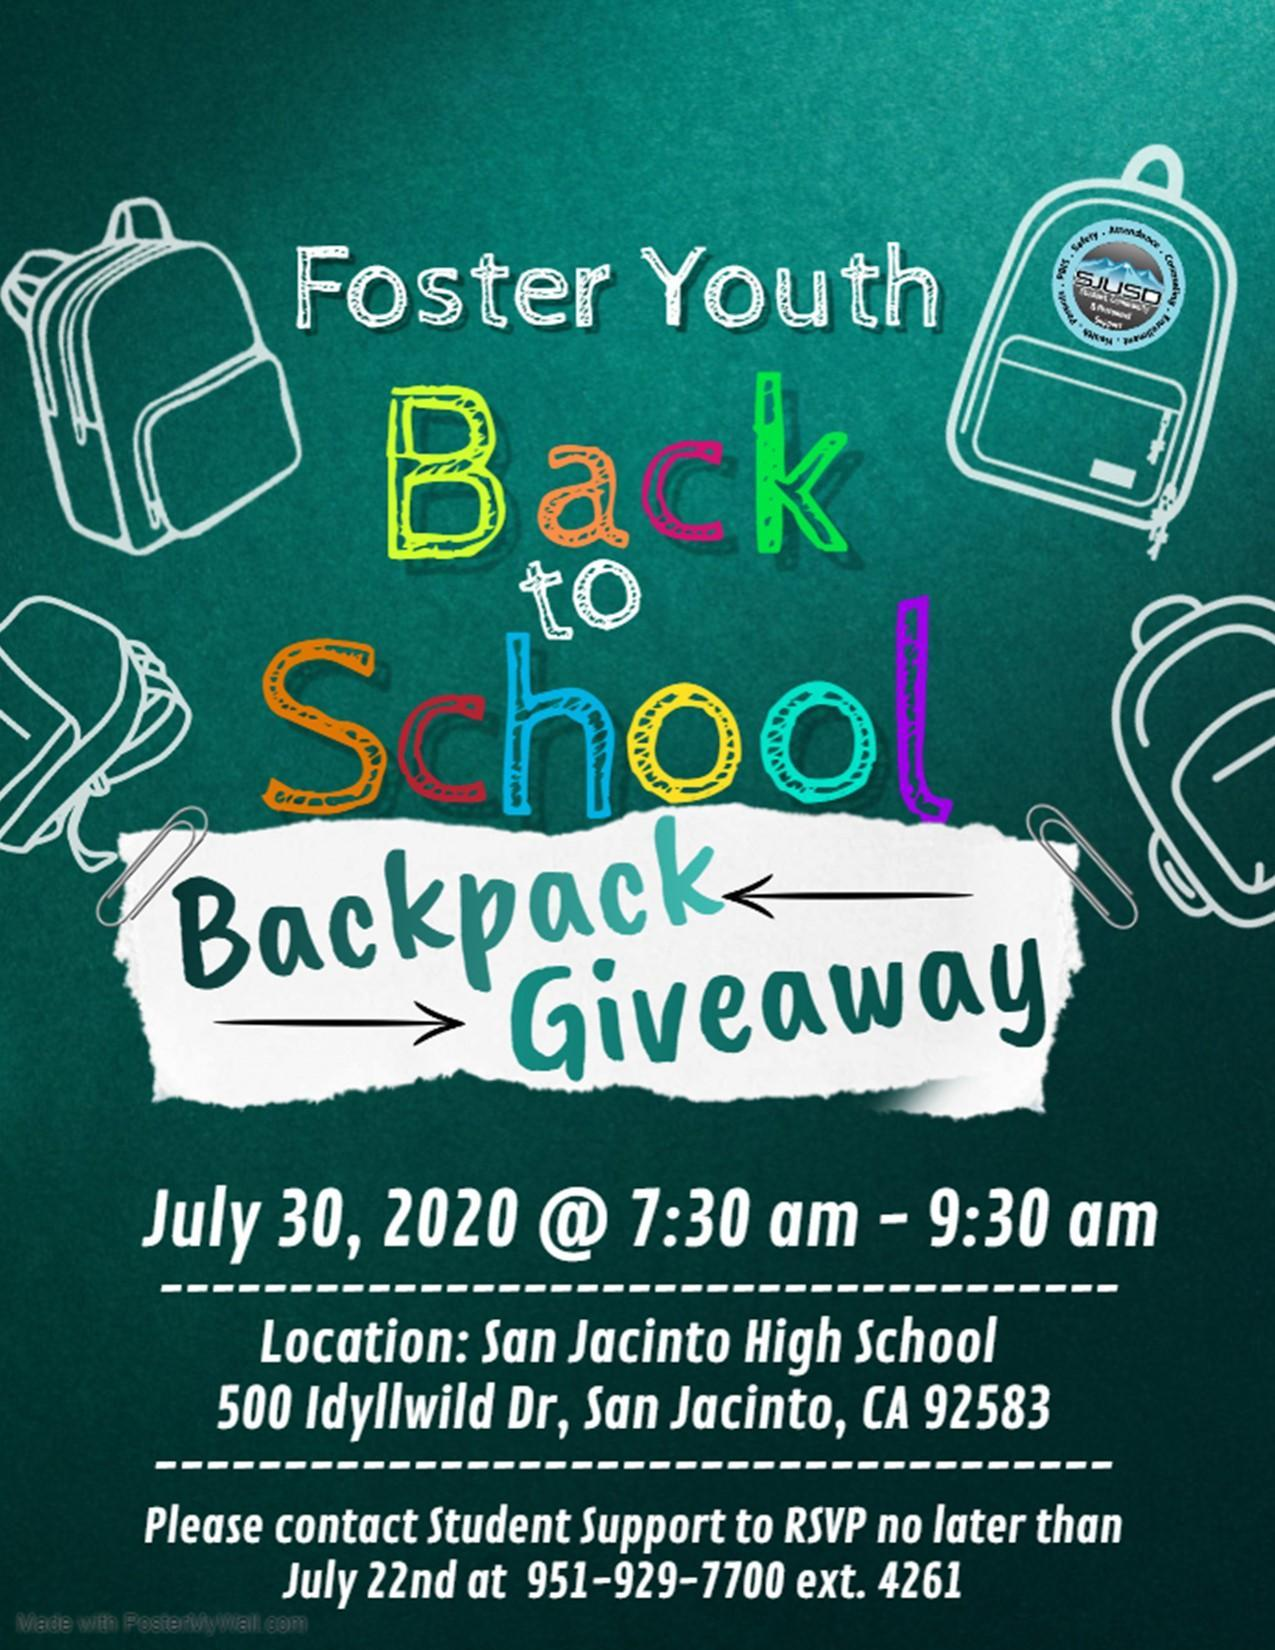 Foster Youth July 30, 2020 Backpack giveaway.